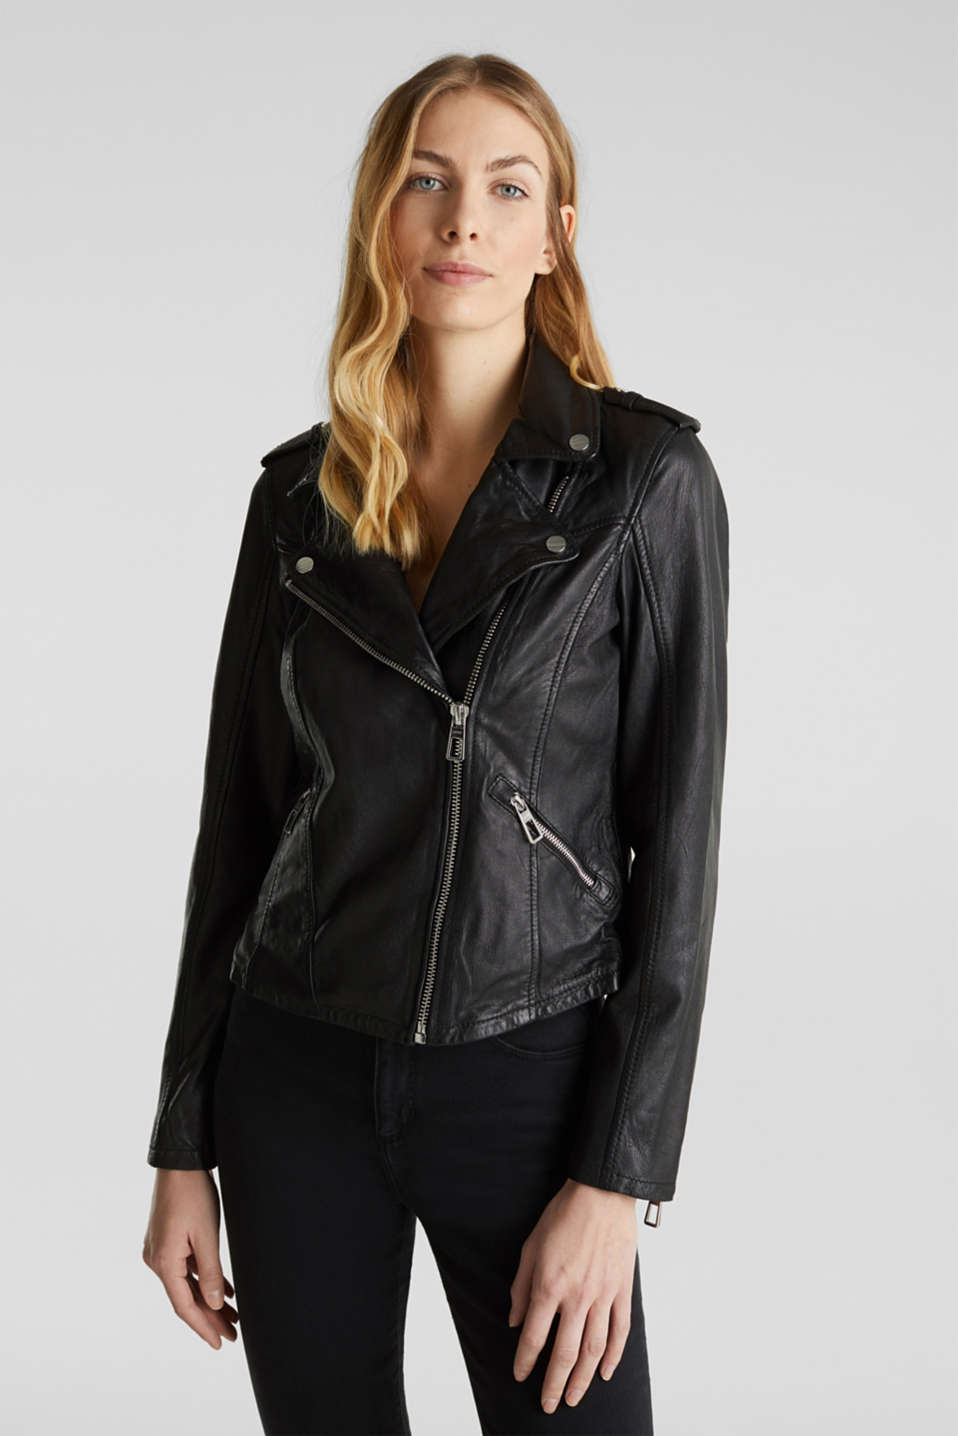 Esprit - Made of leather: biker jacket with a vintage finish